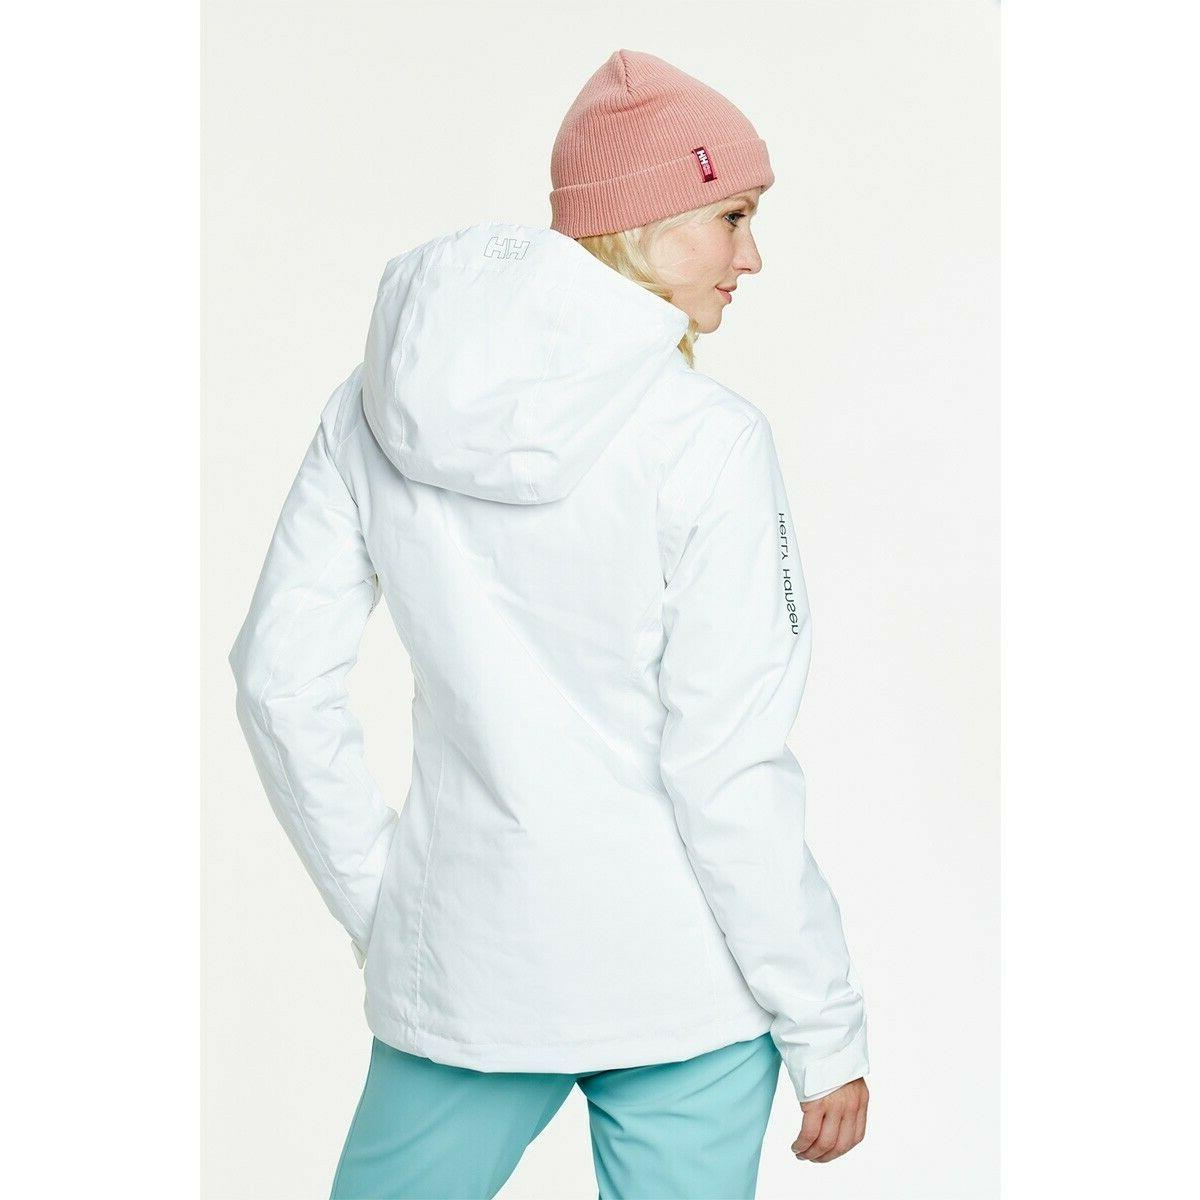 NWT Helly Hansen Sundance Ski Winter Jacket White X-Large